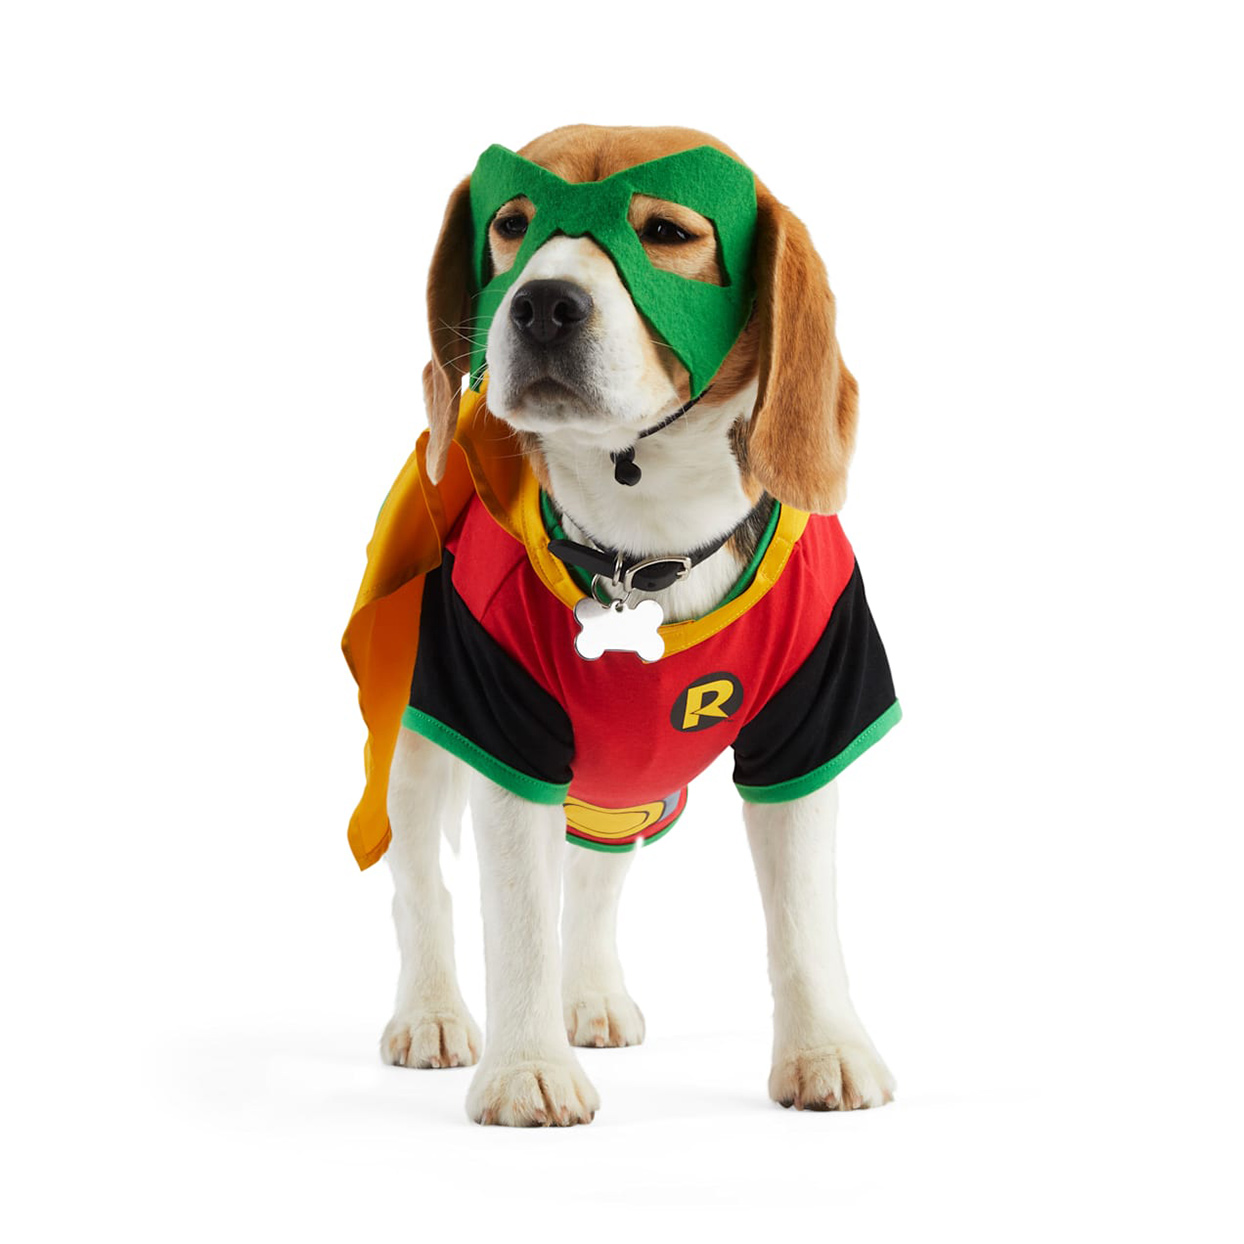 Dog wearing a DC Comics Robin Pet Costume on a white background